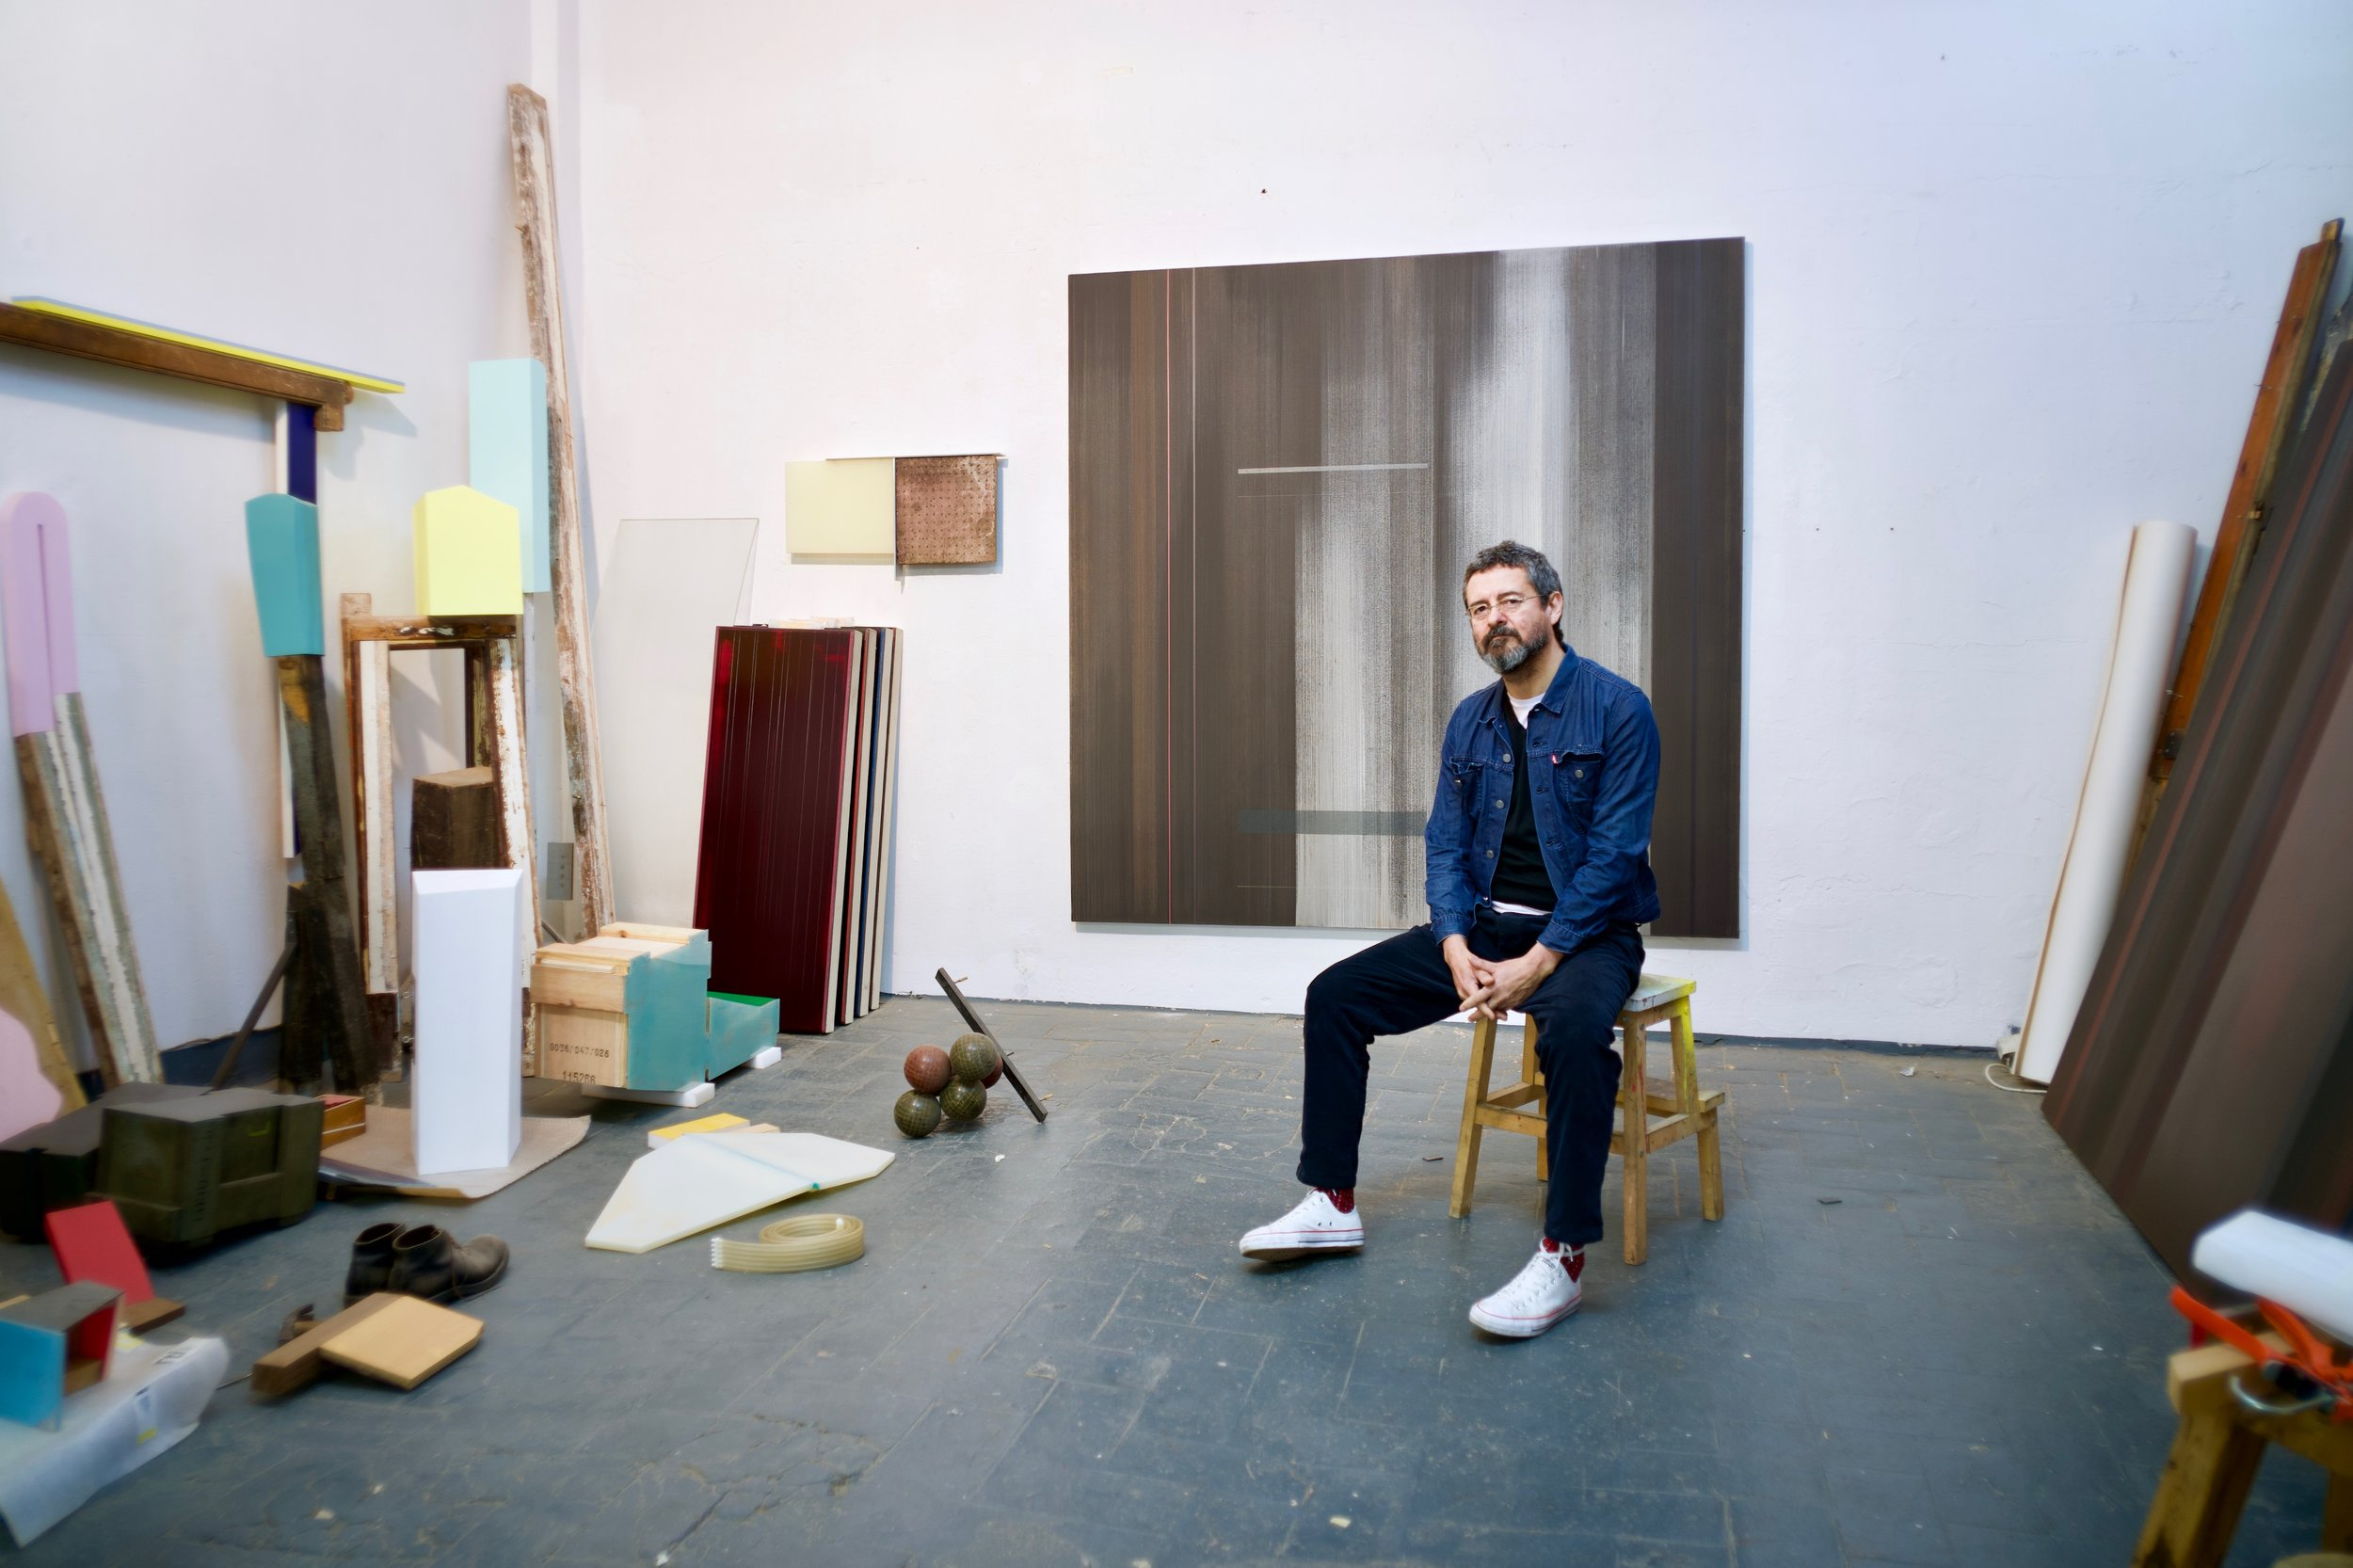 Hernan Ardila in his Barcelona Studio, 2019 photo credit @datduder / Arman Naji